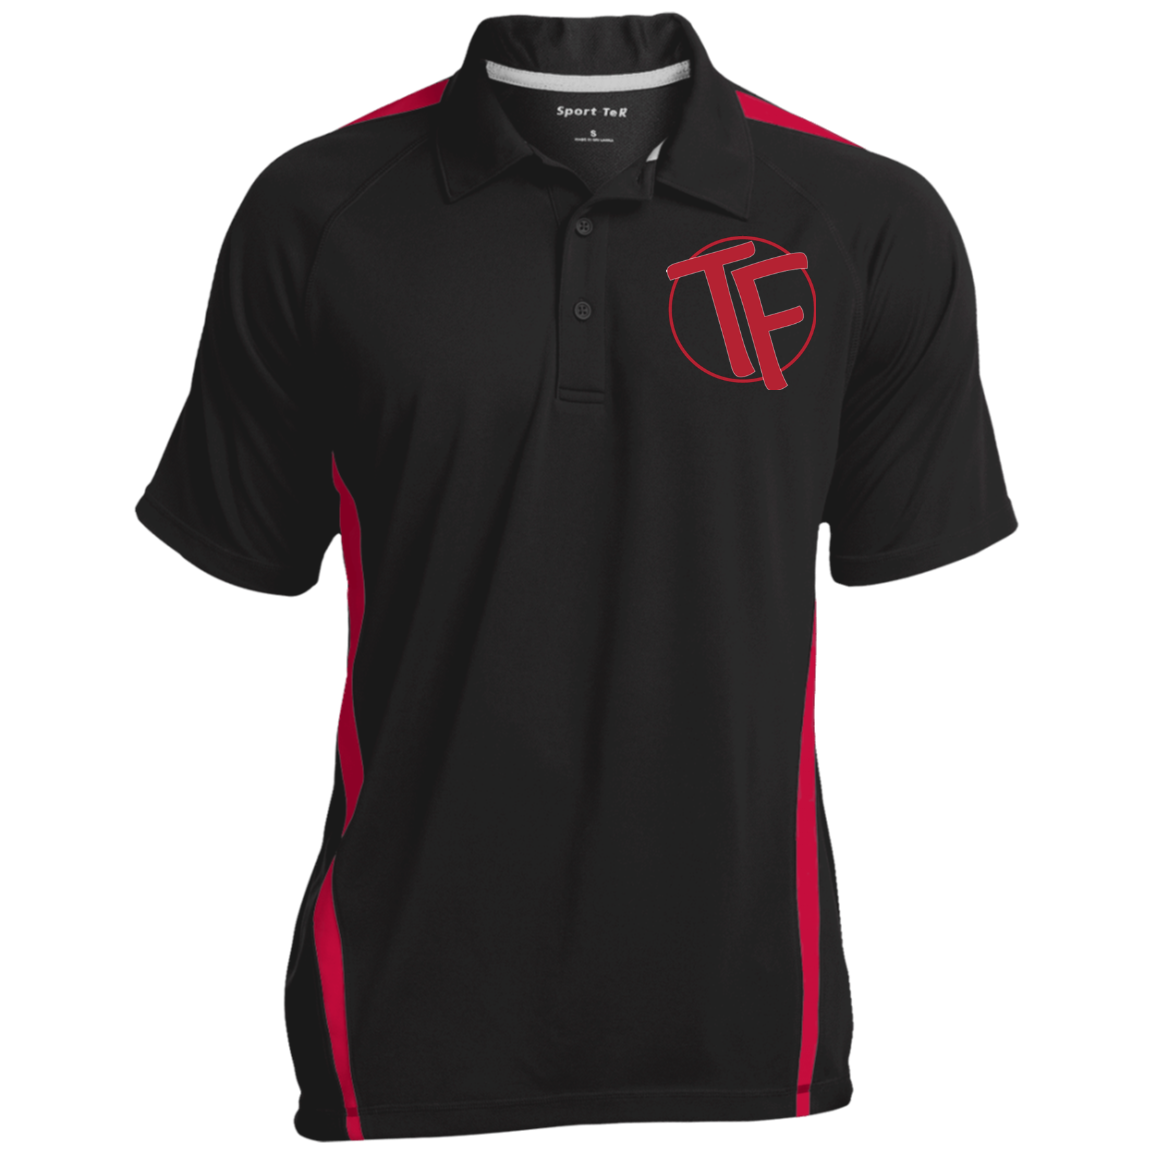 TYFE Black/Red Men's Colorblock 3-Button Polo